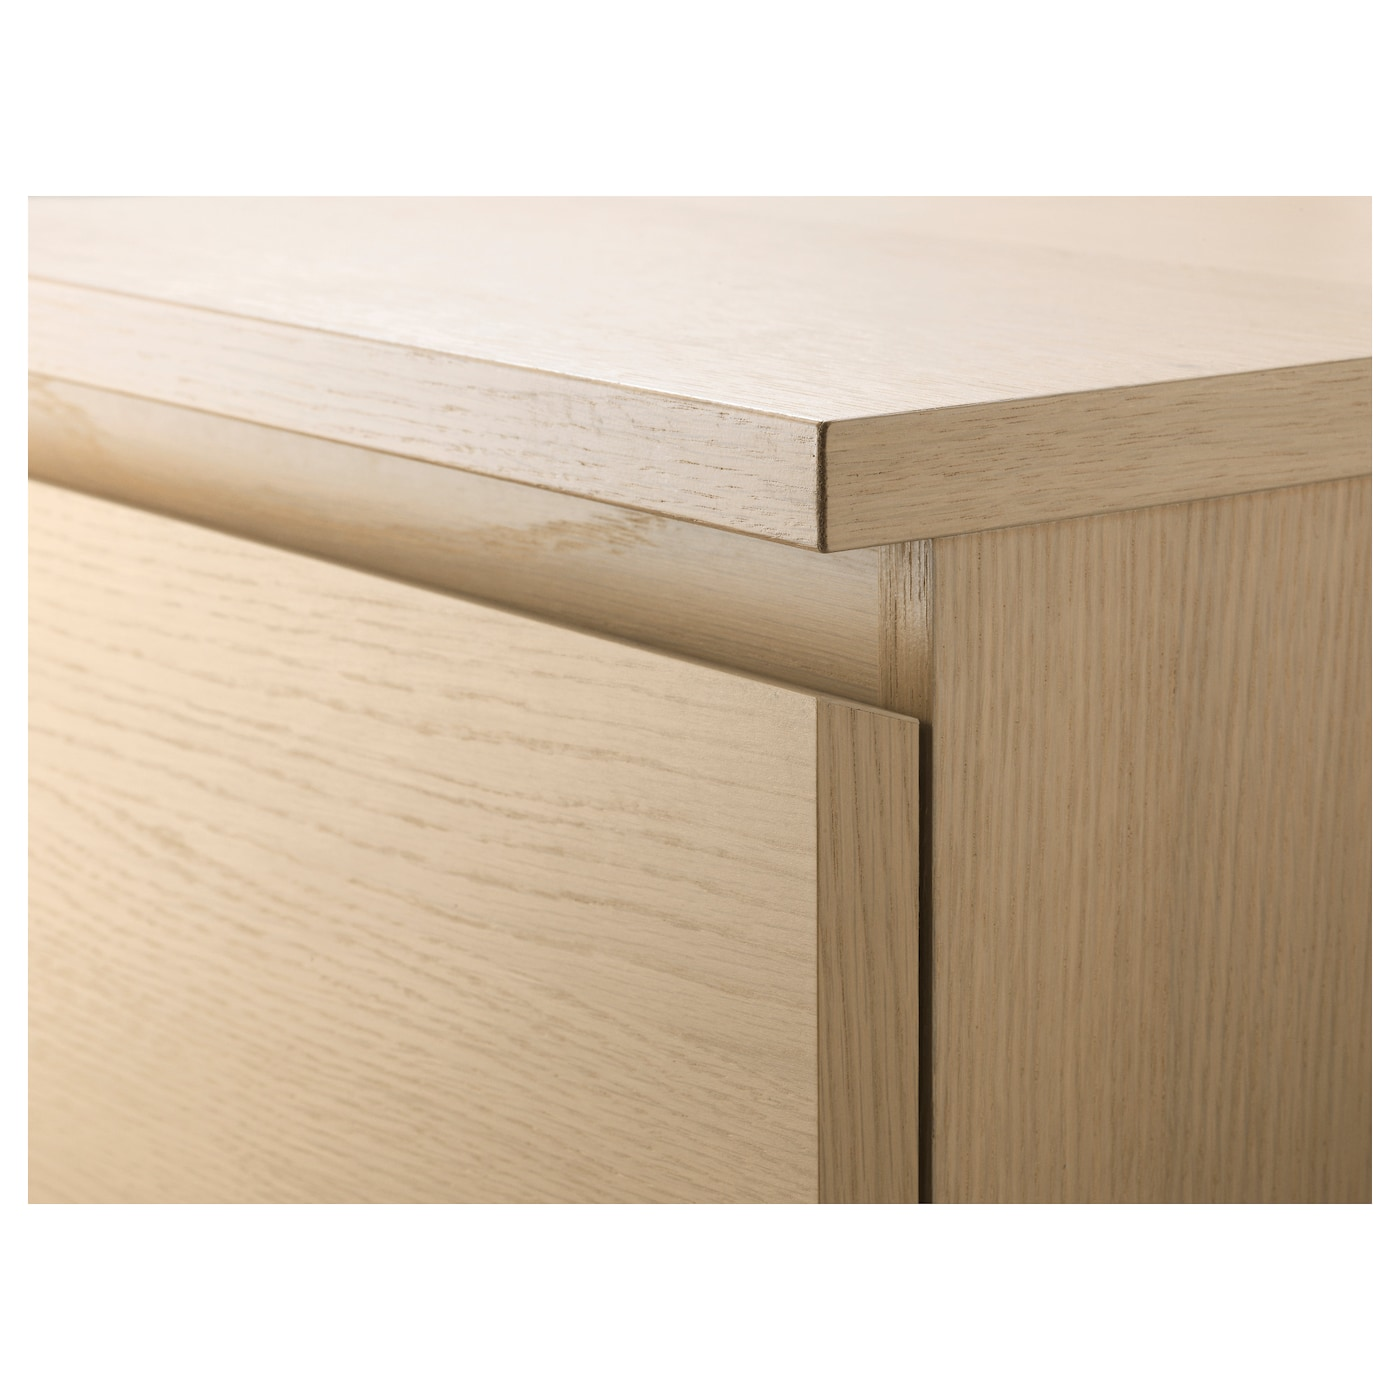 Malm commode 2 tiroirs plaqu ch ne blanchi 40x55 cm ikea for Table de chevet malm chene blanchi